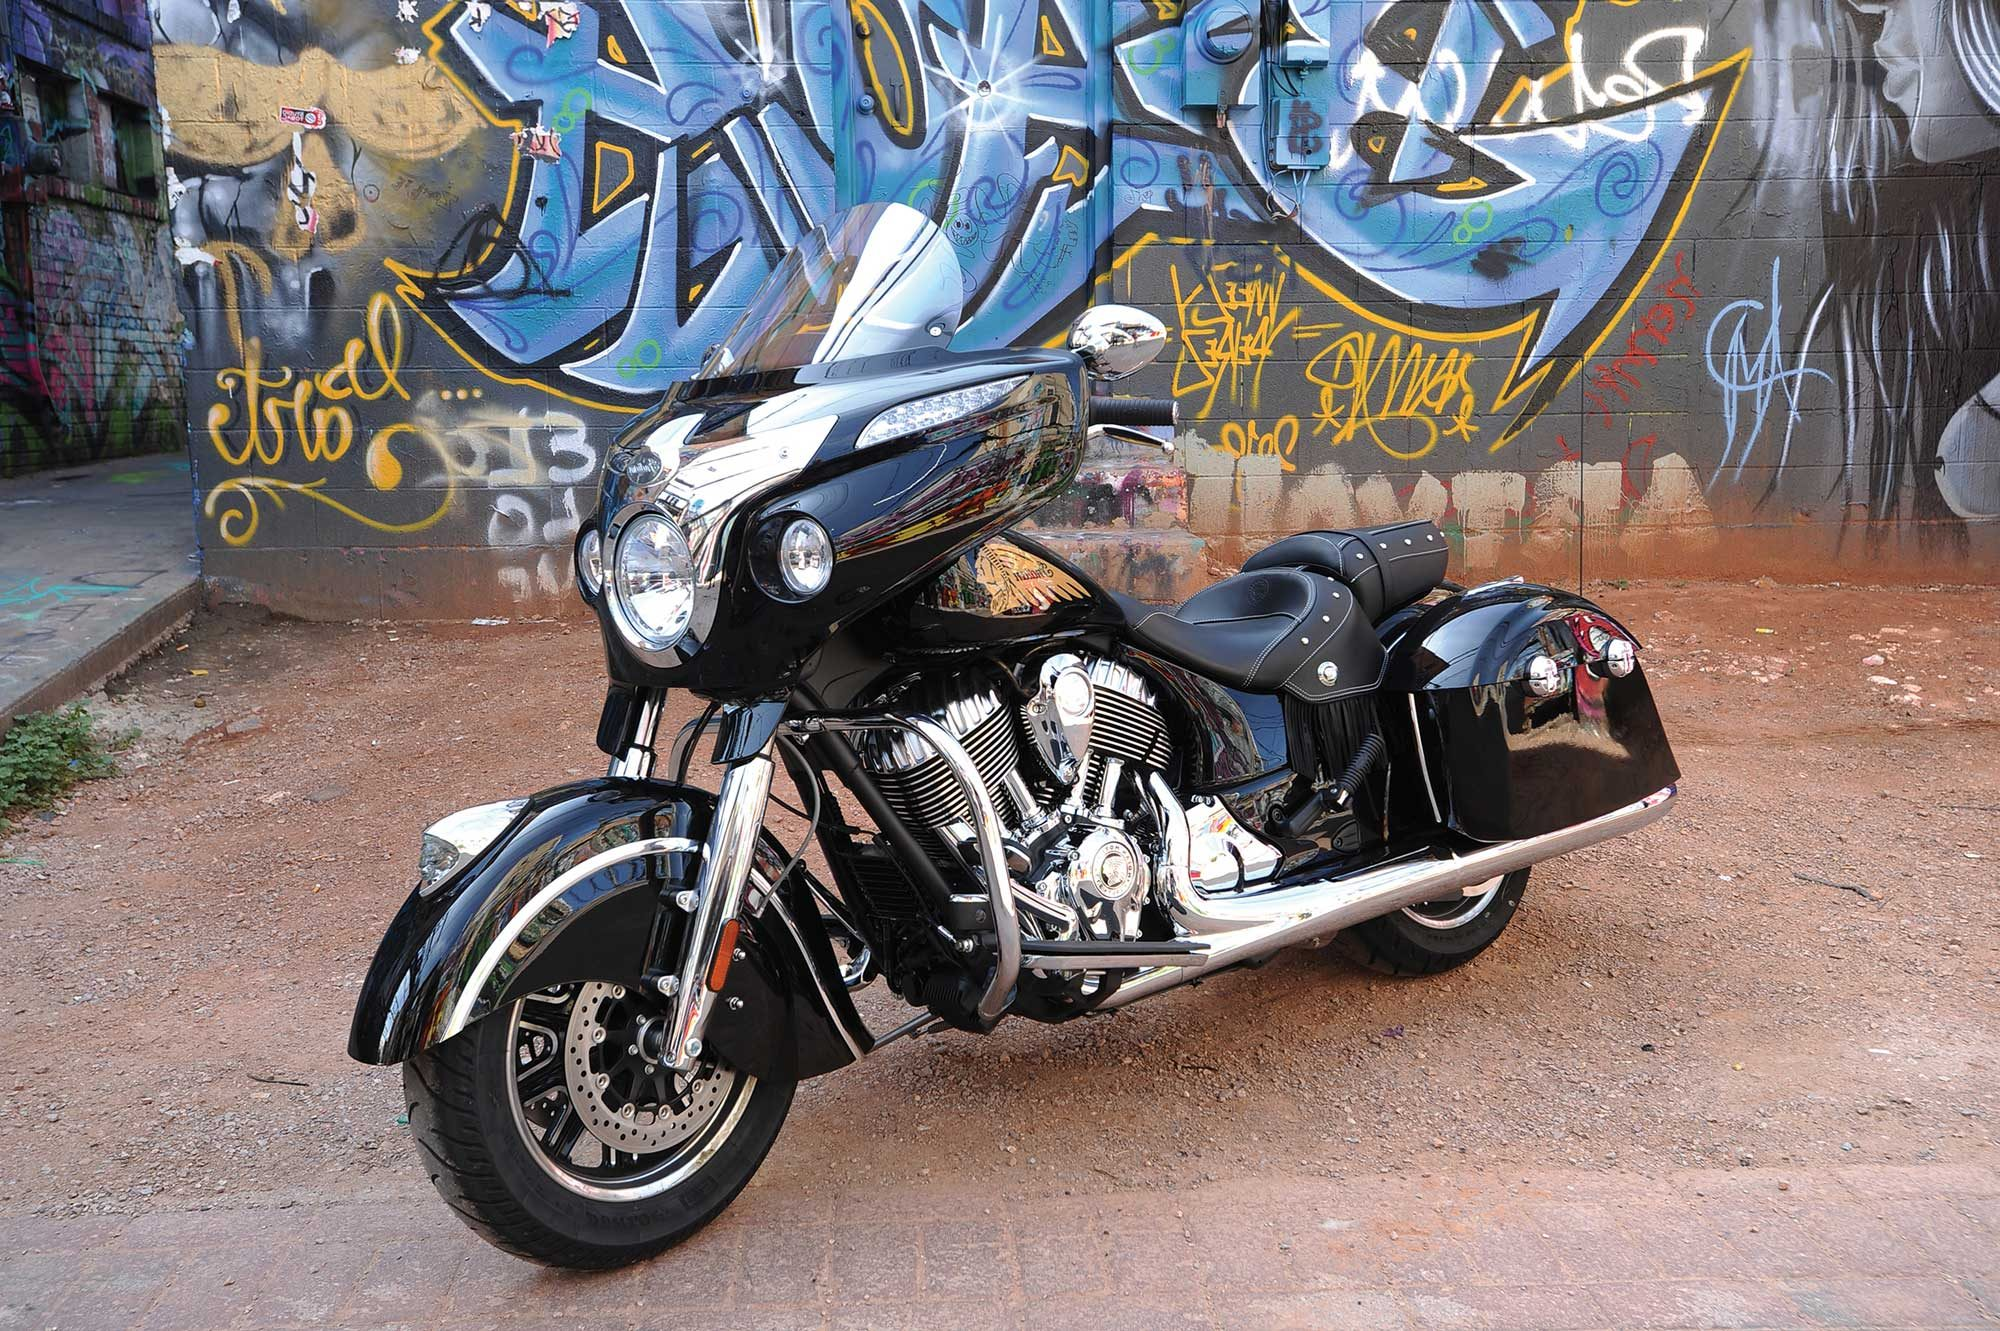 Indian Chieftain Wallpaper HD